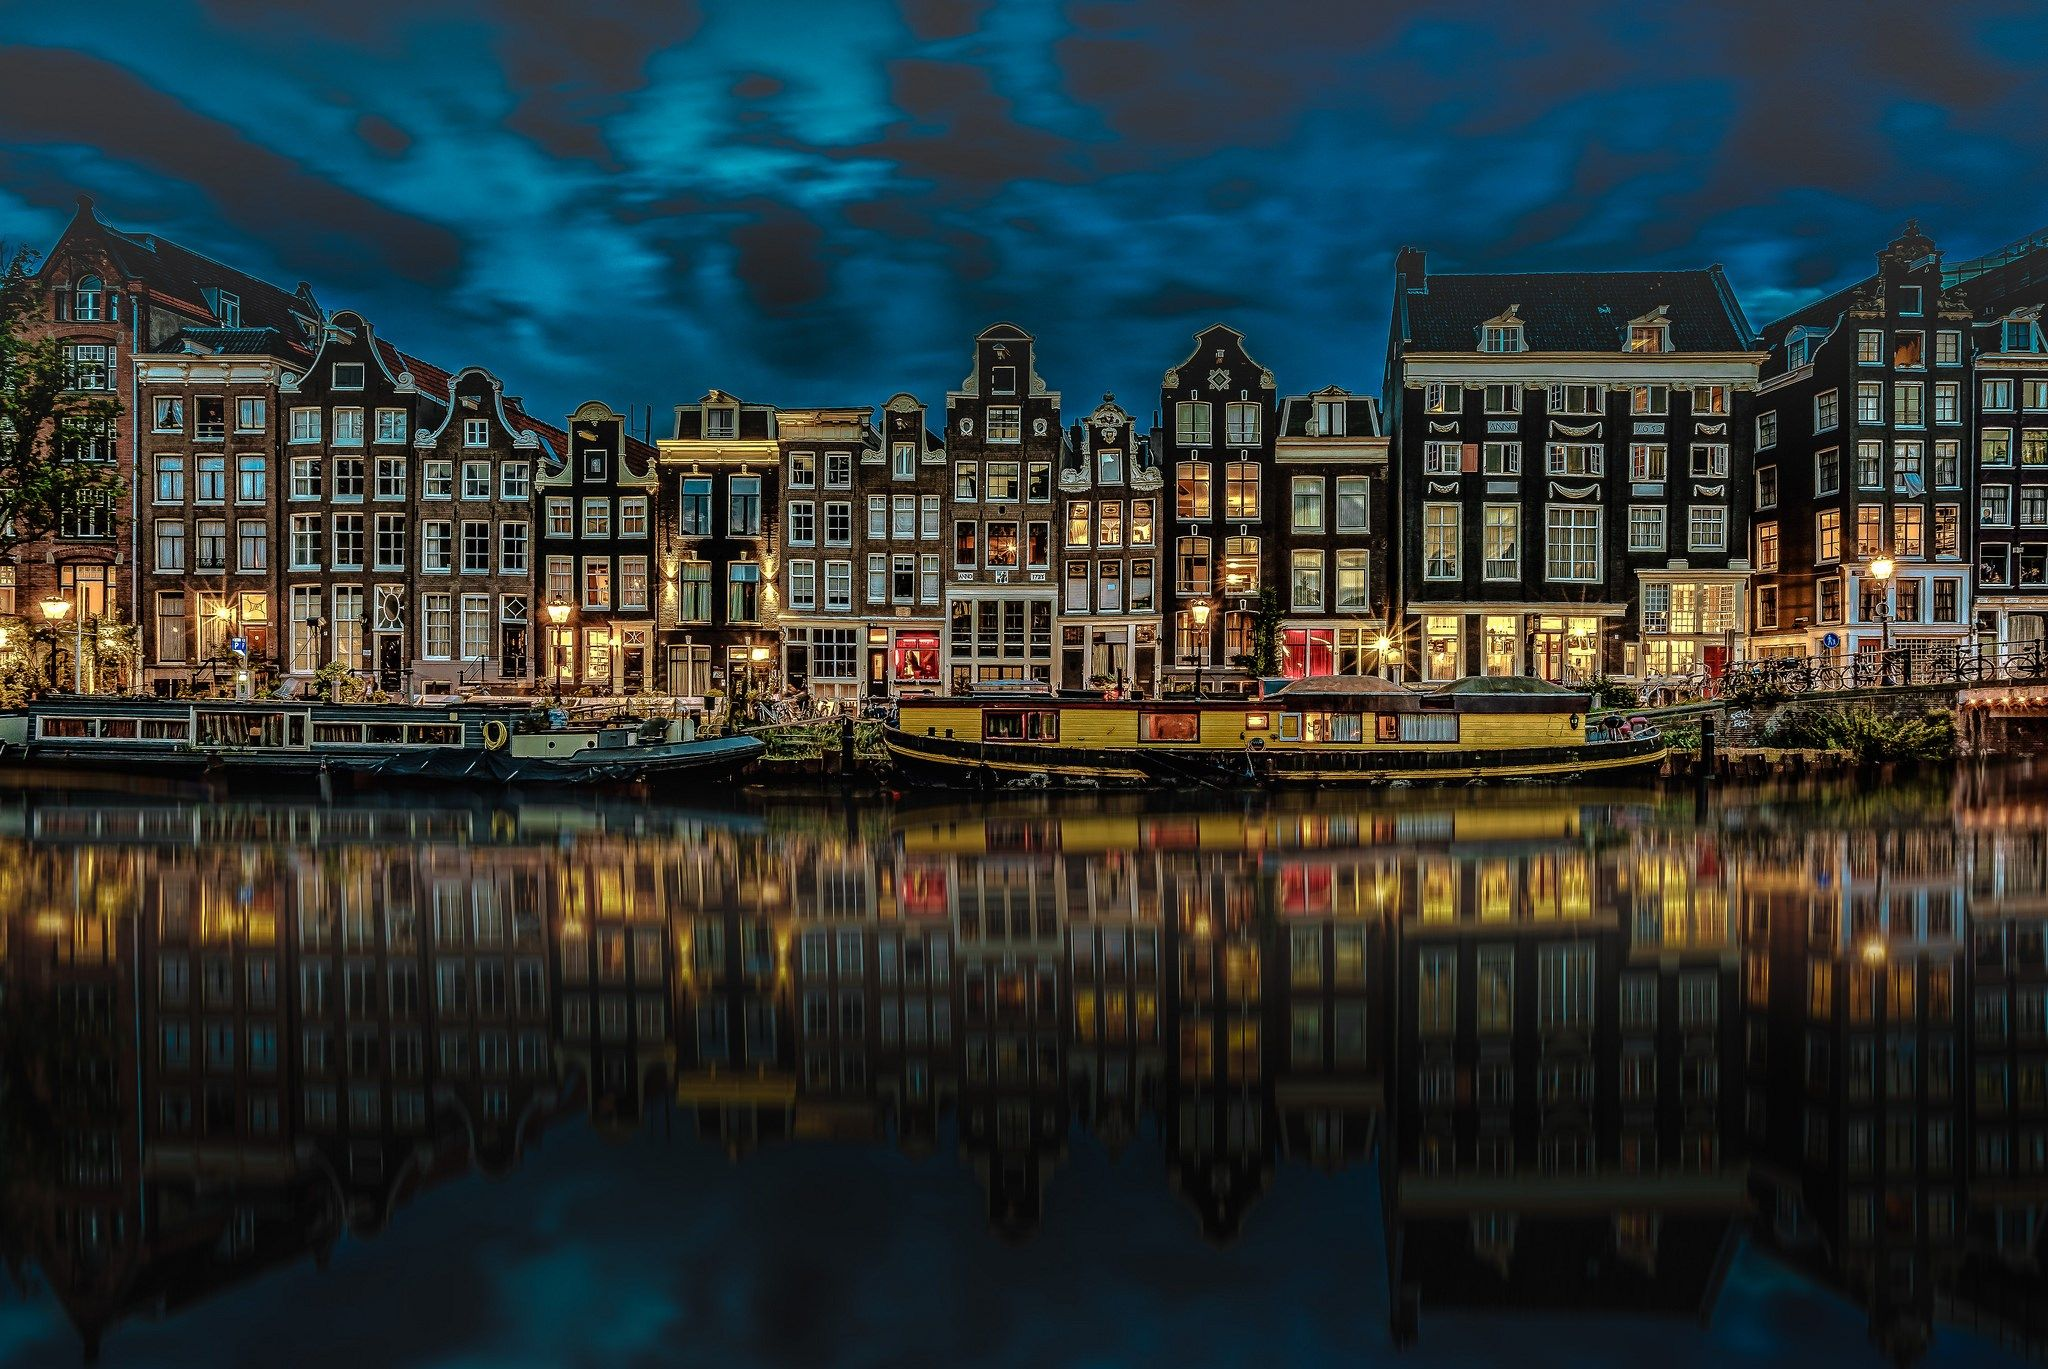 2048x1369 Px Amsterdam Wallpaper 1080p High Quality By Chancey